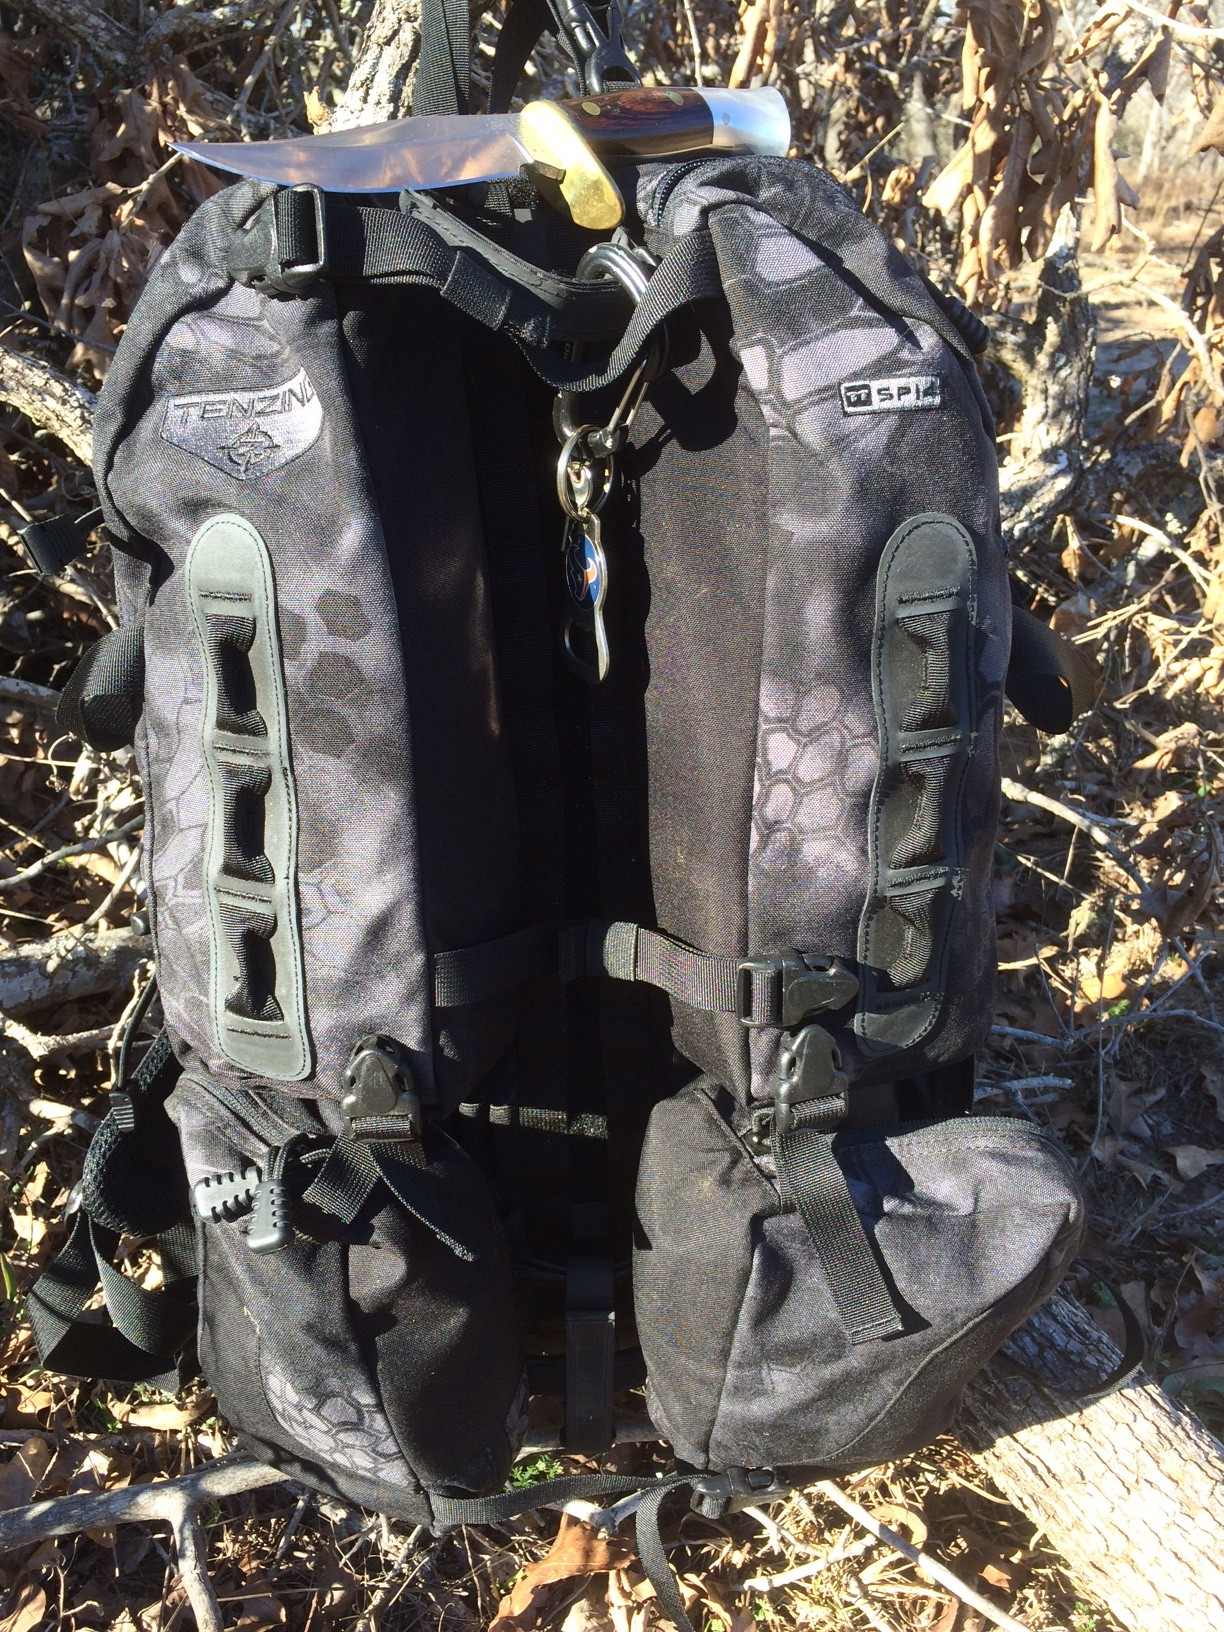 Tenzing TT SP14 Pack Review